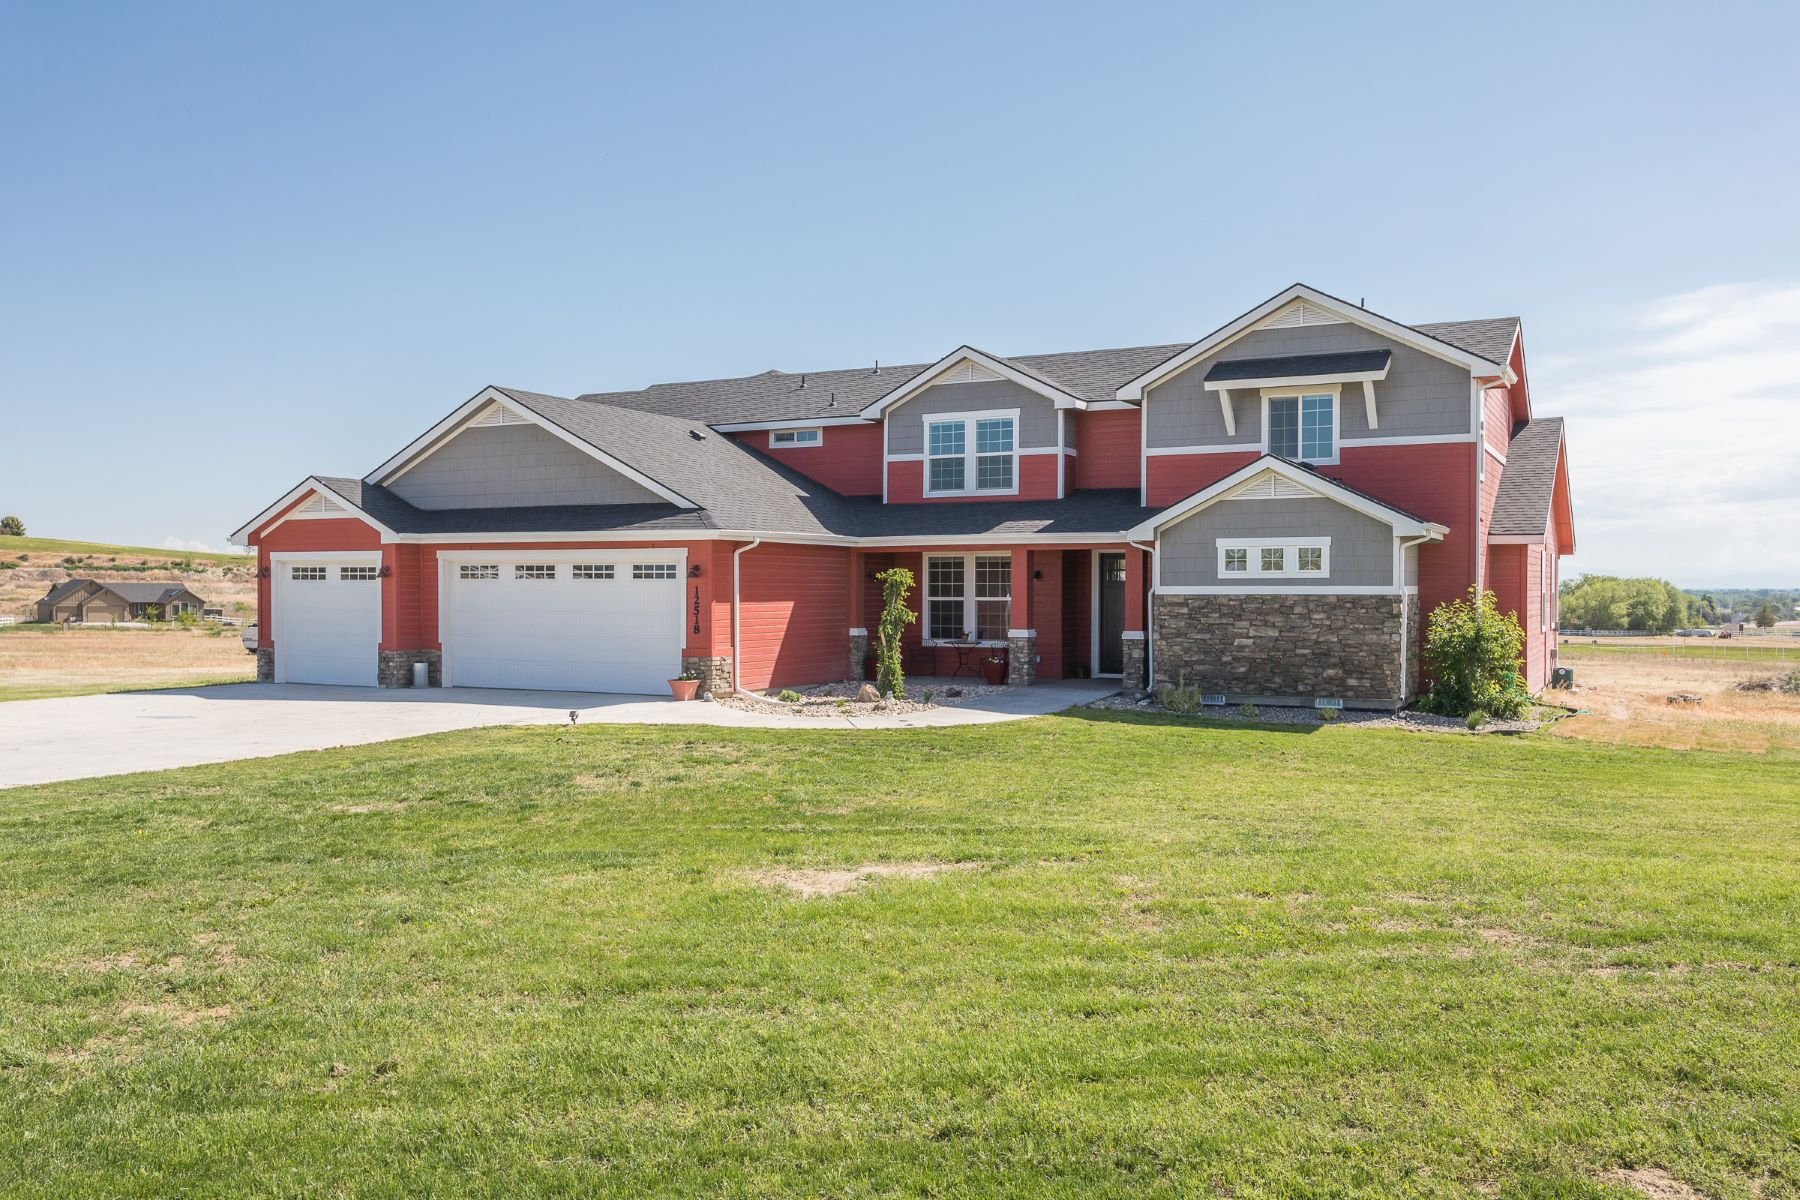 Single Family Home for Active at 12518 Equestrian Way, Nampa 12518 Equestrian Way Nampa, Idaho 83686 United States